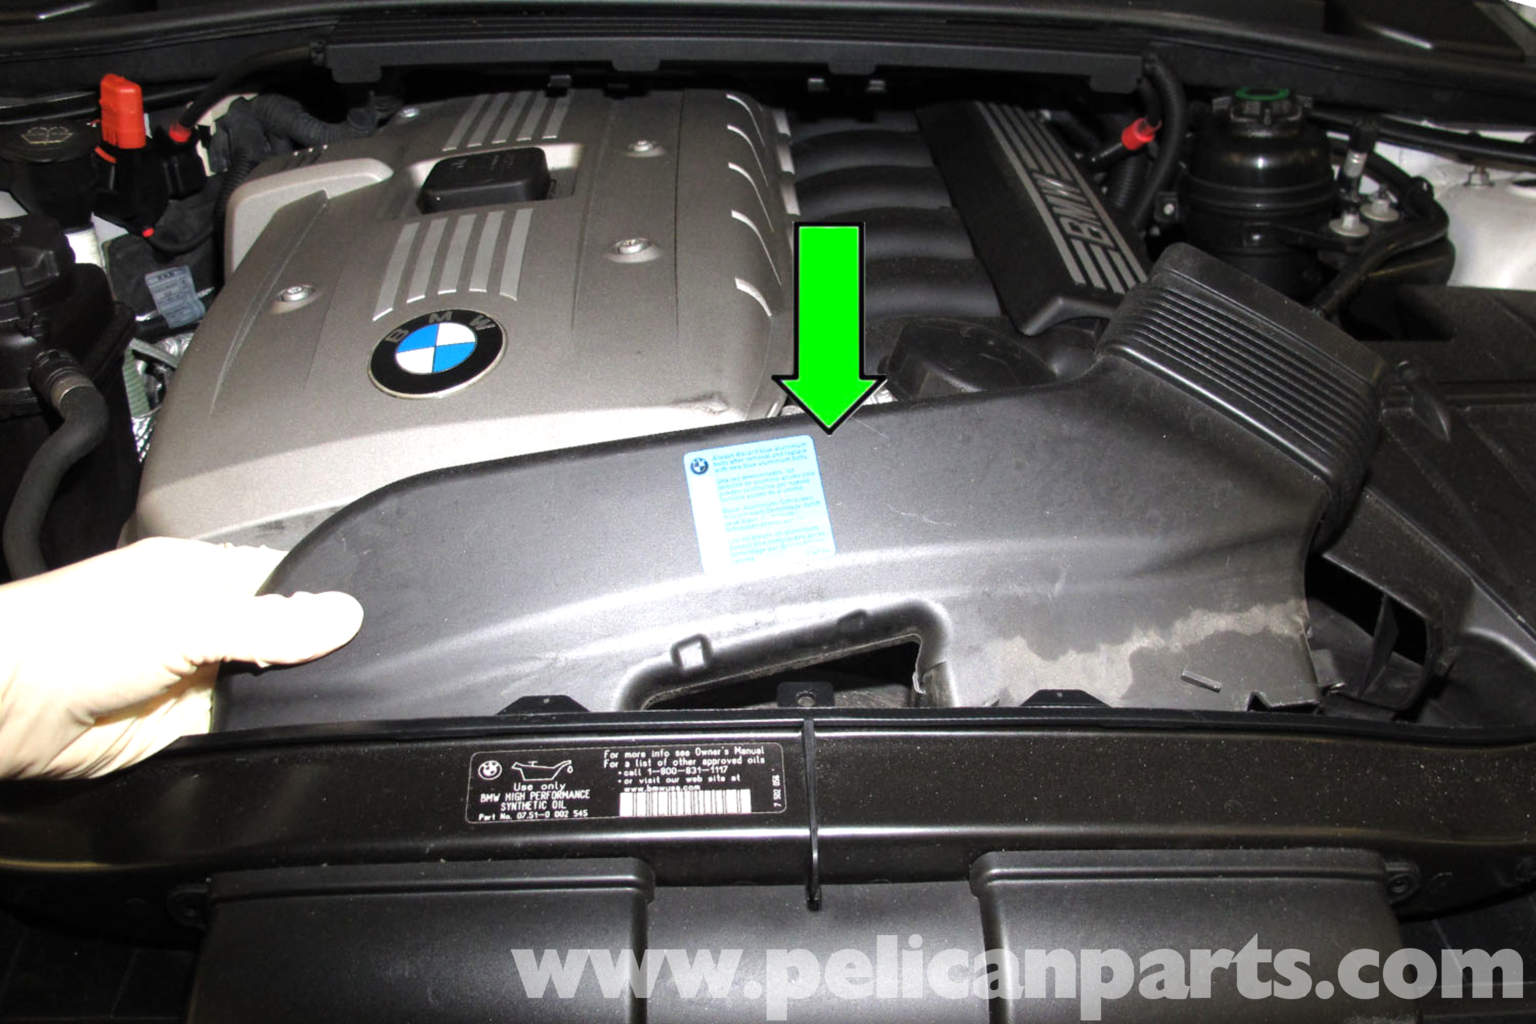 Bmw 3 Series Fuse Box Location Manual Guide Wiring Diagram 2012 335i E90 Knock Sensor Replacement E91 E92 E93 Pelican Parts Diy Rh Pelicanparts Com